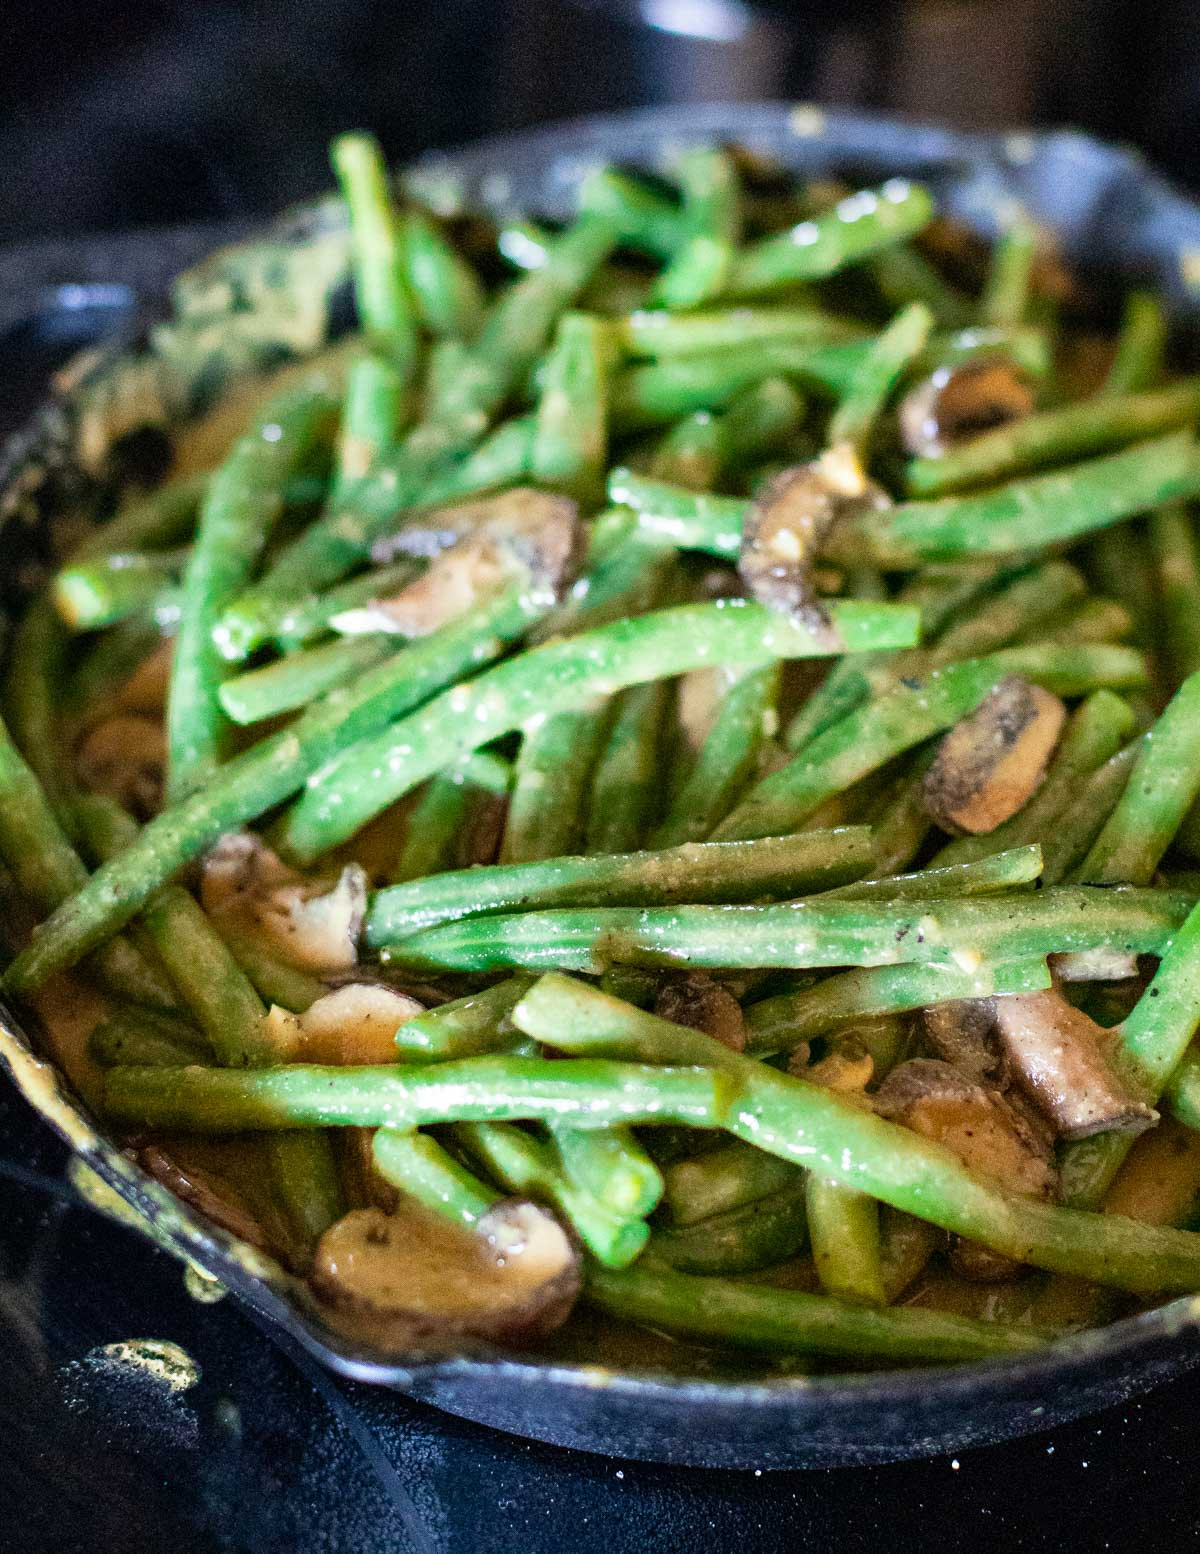 green beans mixed with mushroom sauce